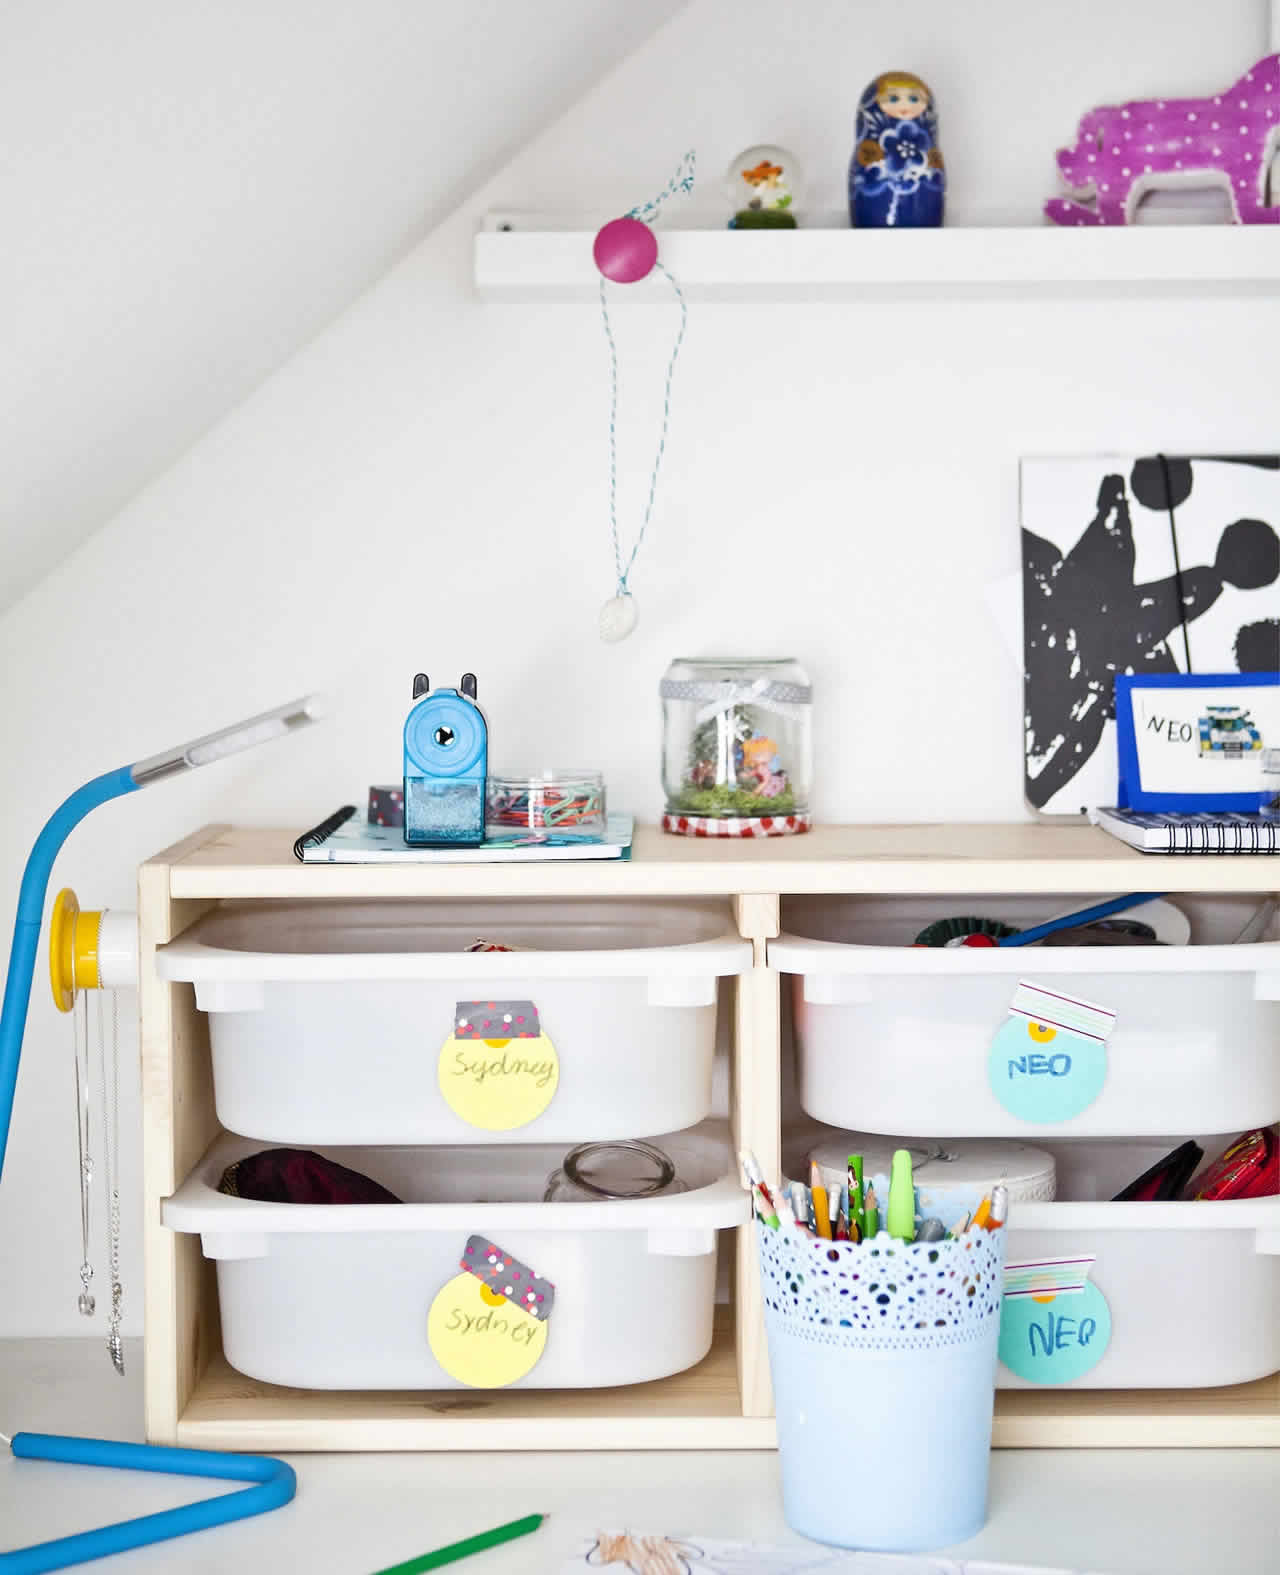 IKEA Ideas - Home visit: Ideas for a shared kids' bedroom